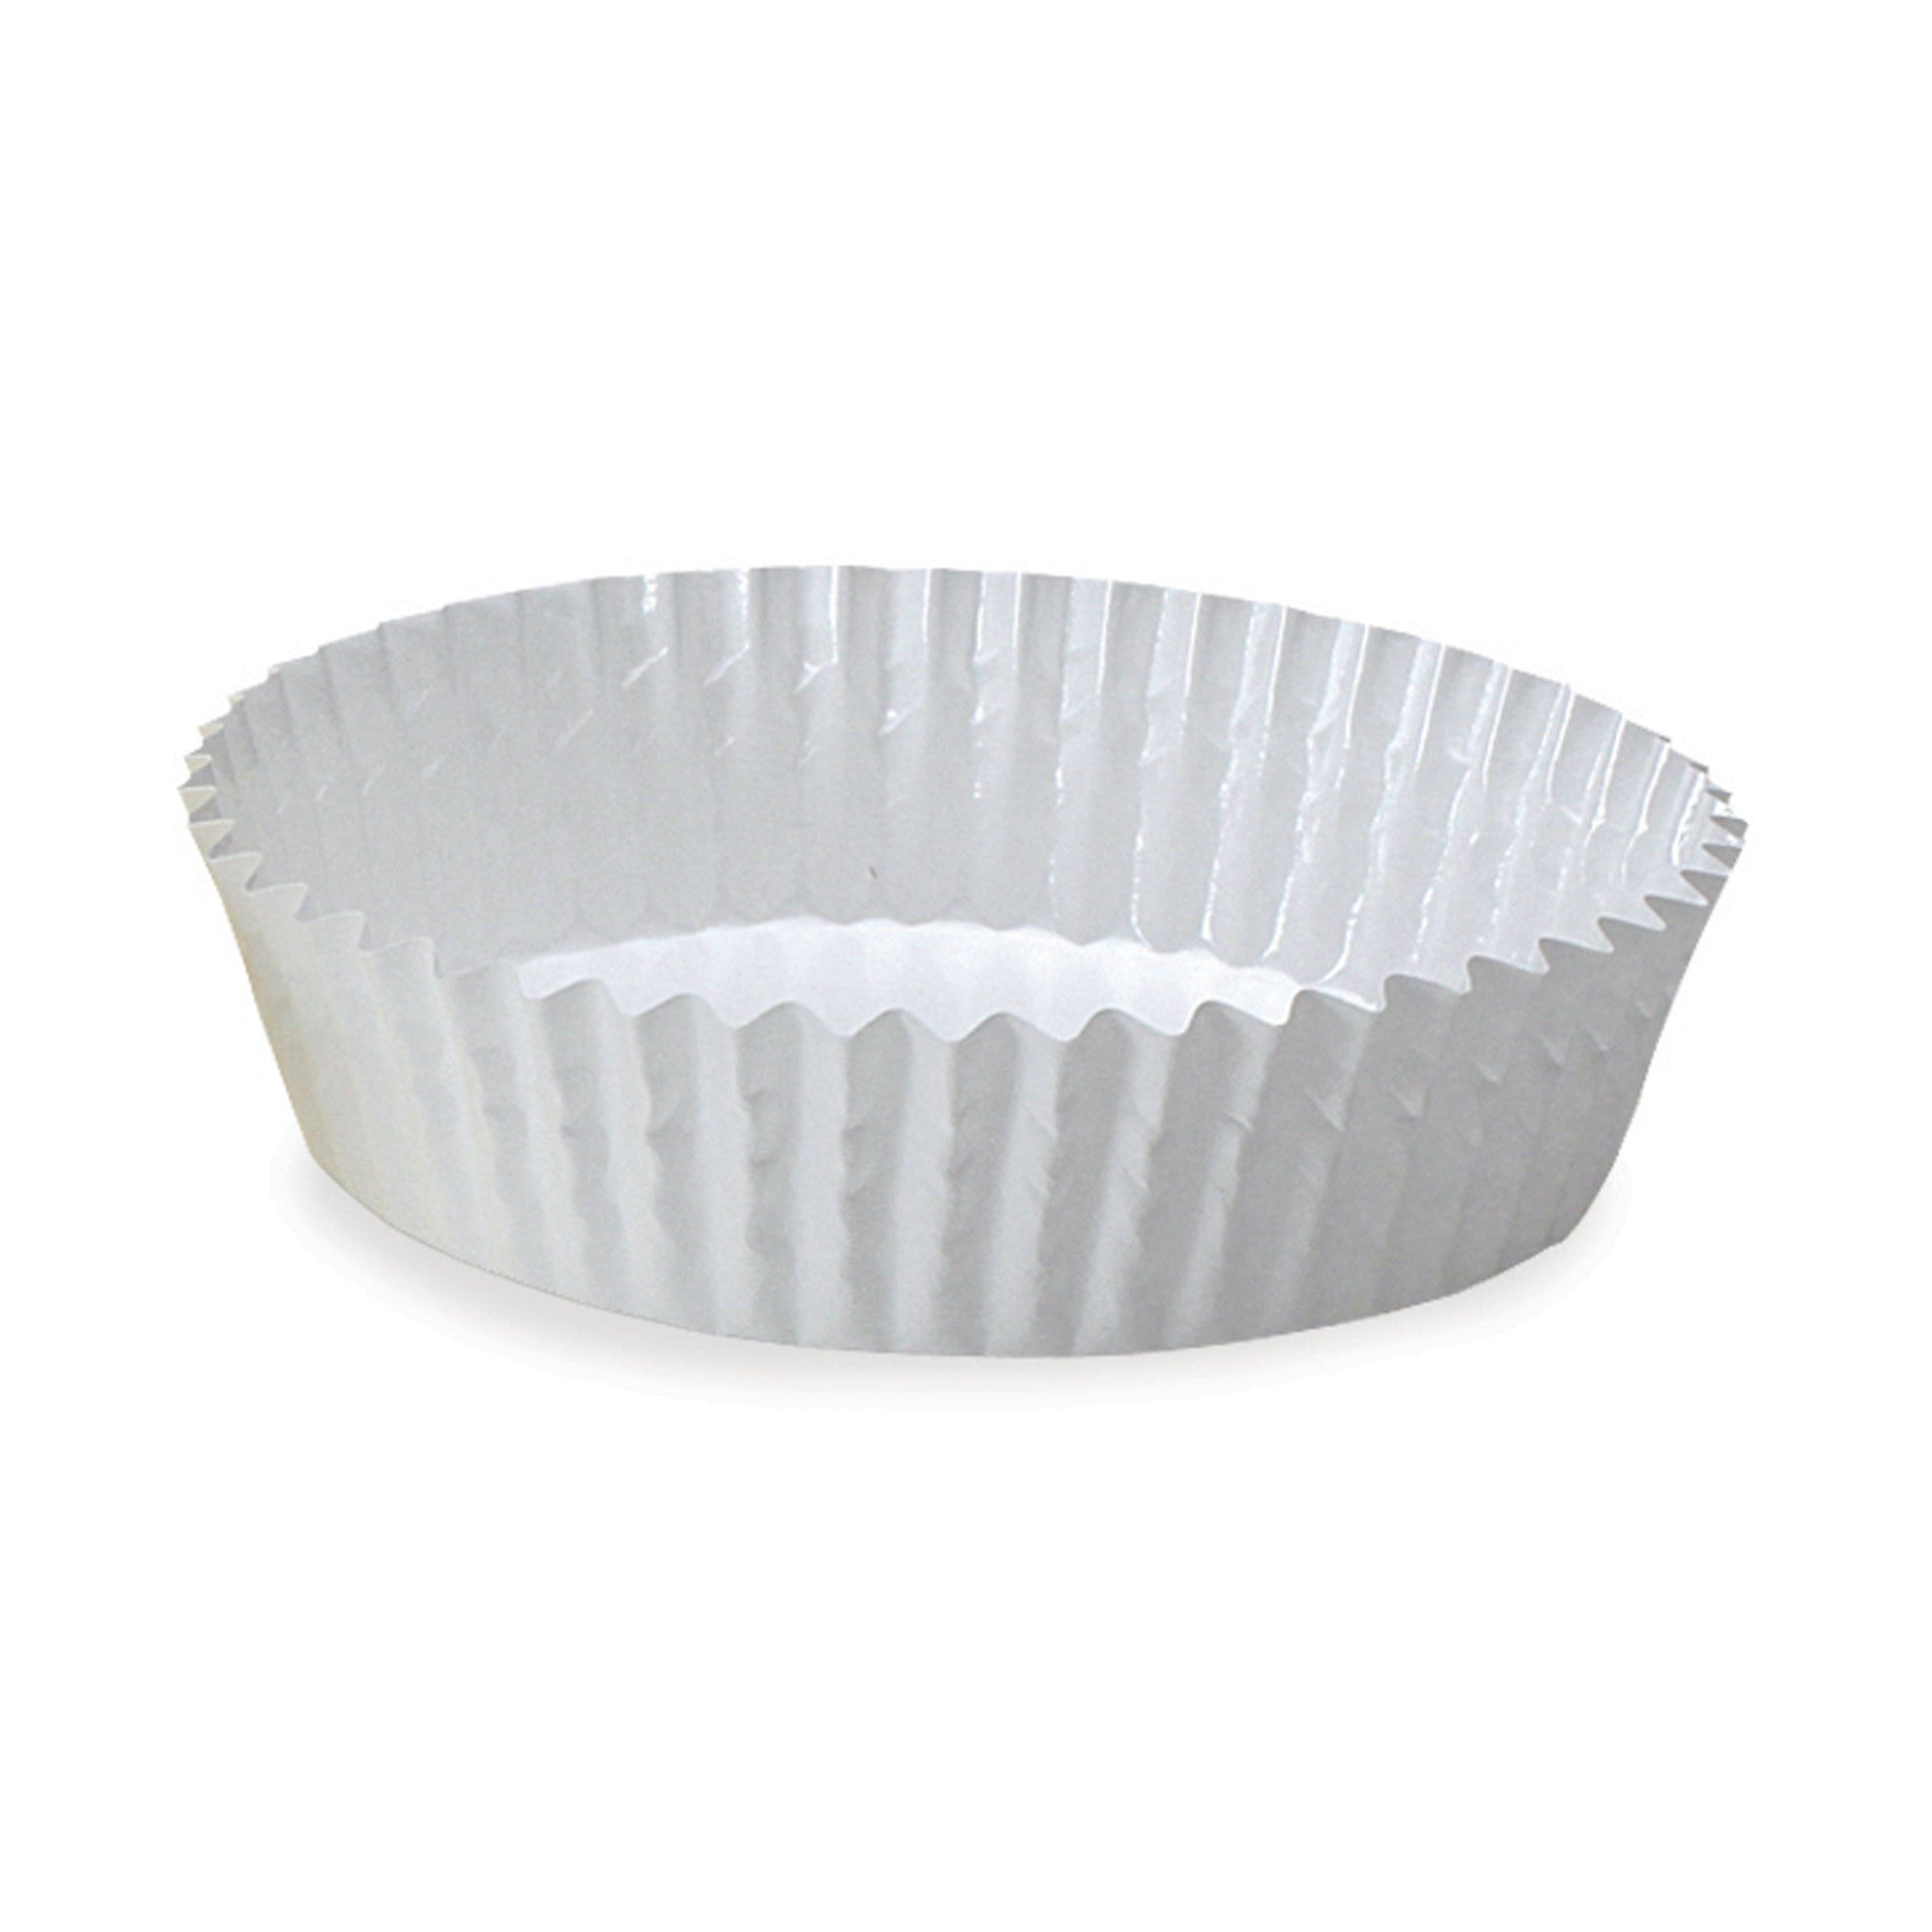 Ruffled Baking Cups, PTC07522W - Welcome Home Brands